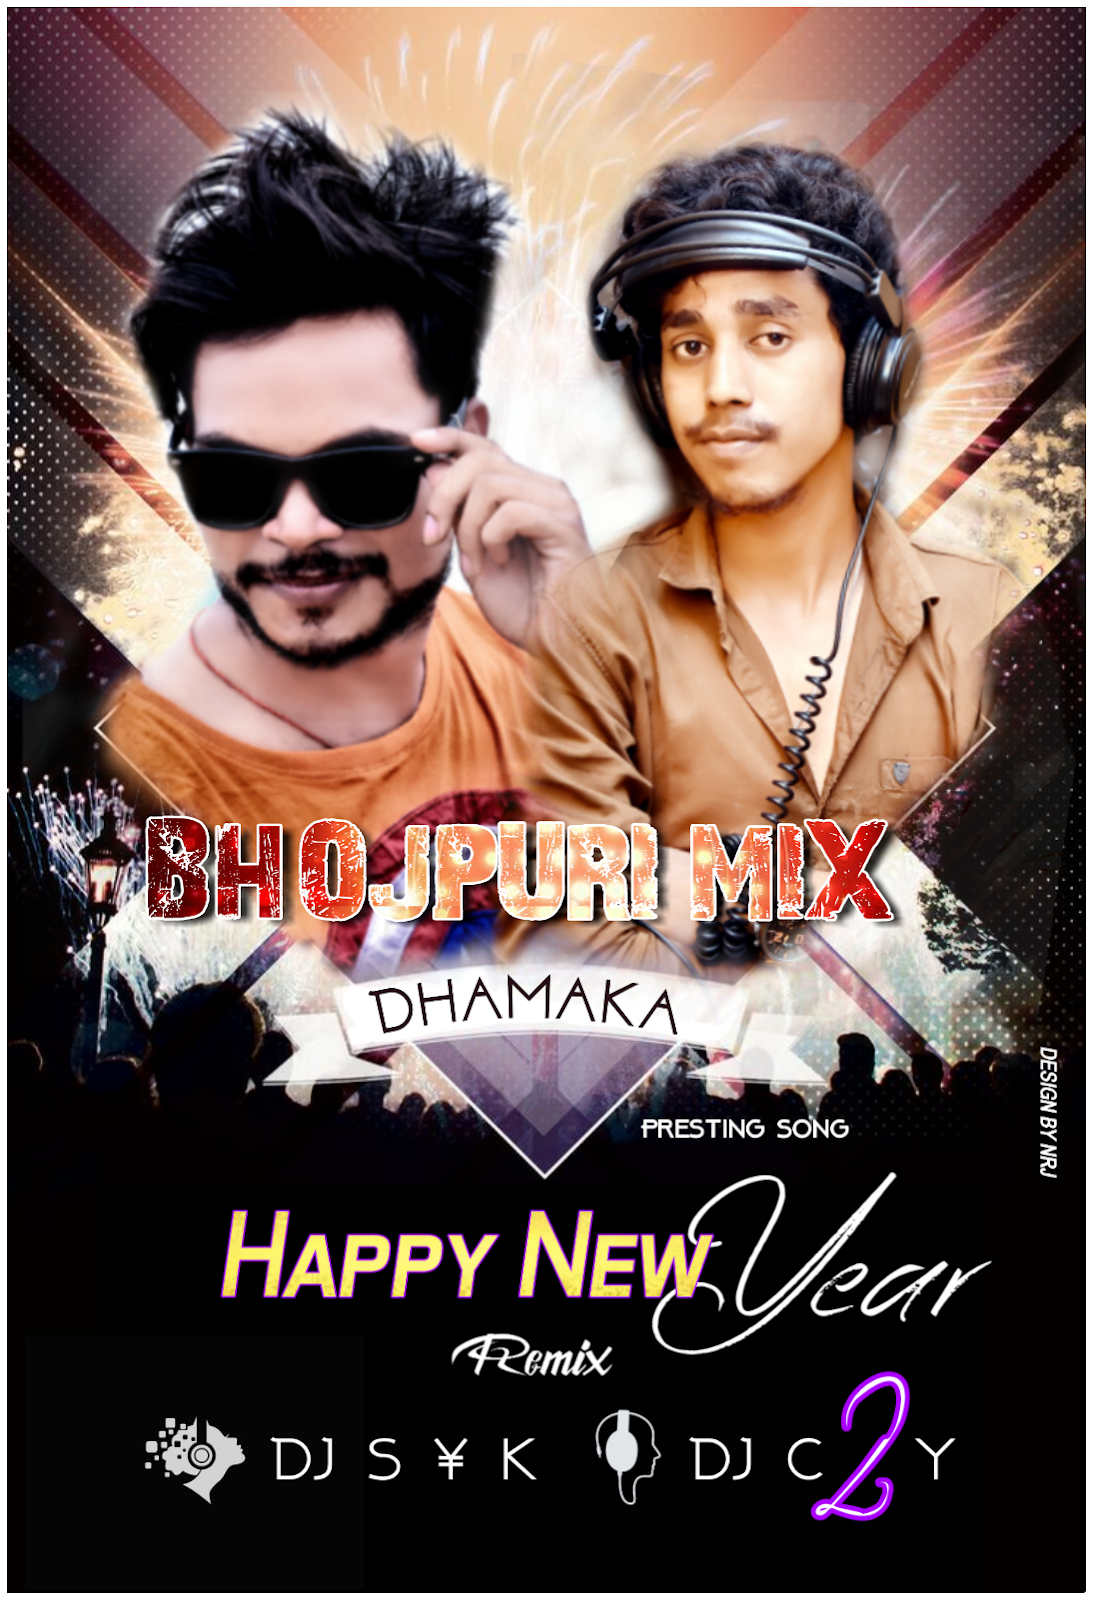 BHOJPURI REMIX PACK - HAPPY NEW YEAR SPECIAL REMIX 2019 DJ